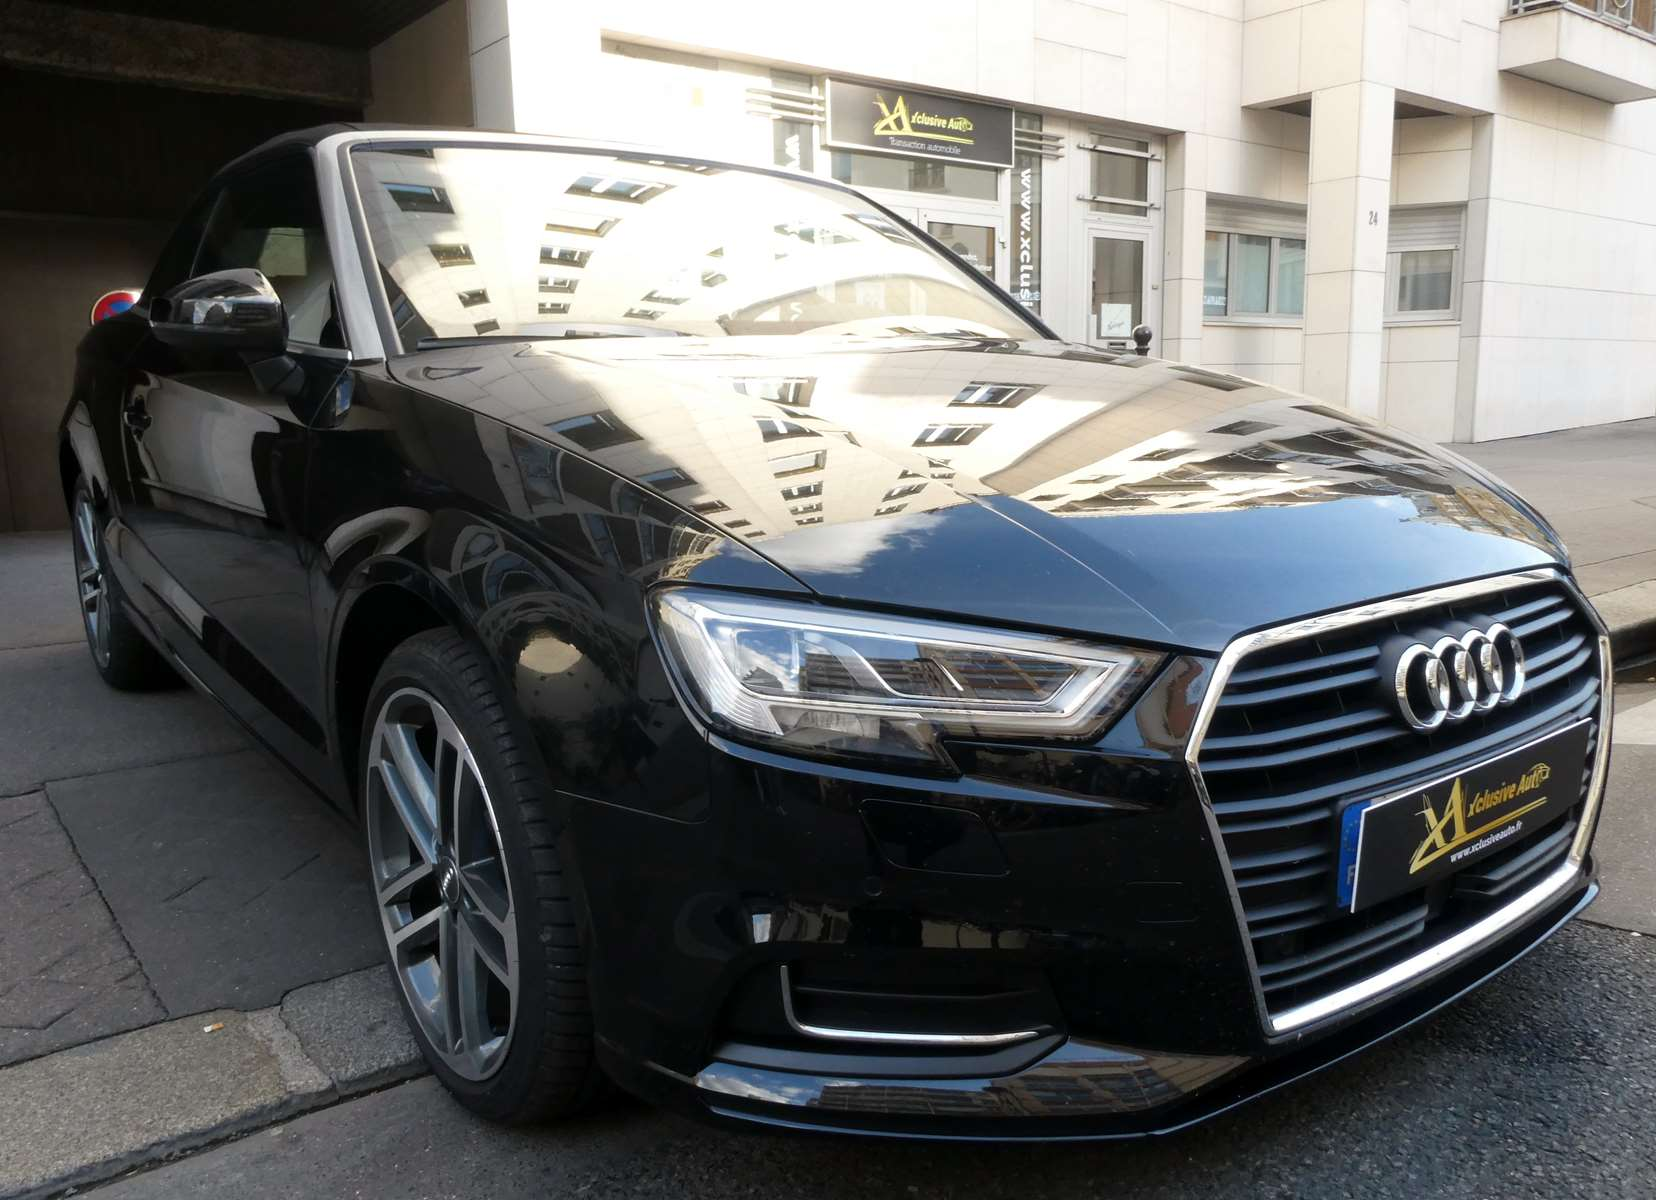 Audi A3 (2) cabriolet 35 TFSI 150 Design luxe S tronic 7 0